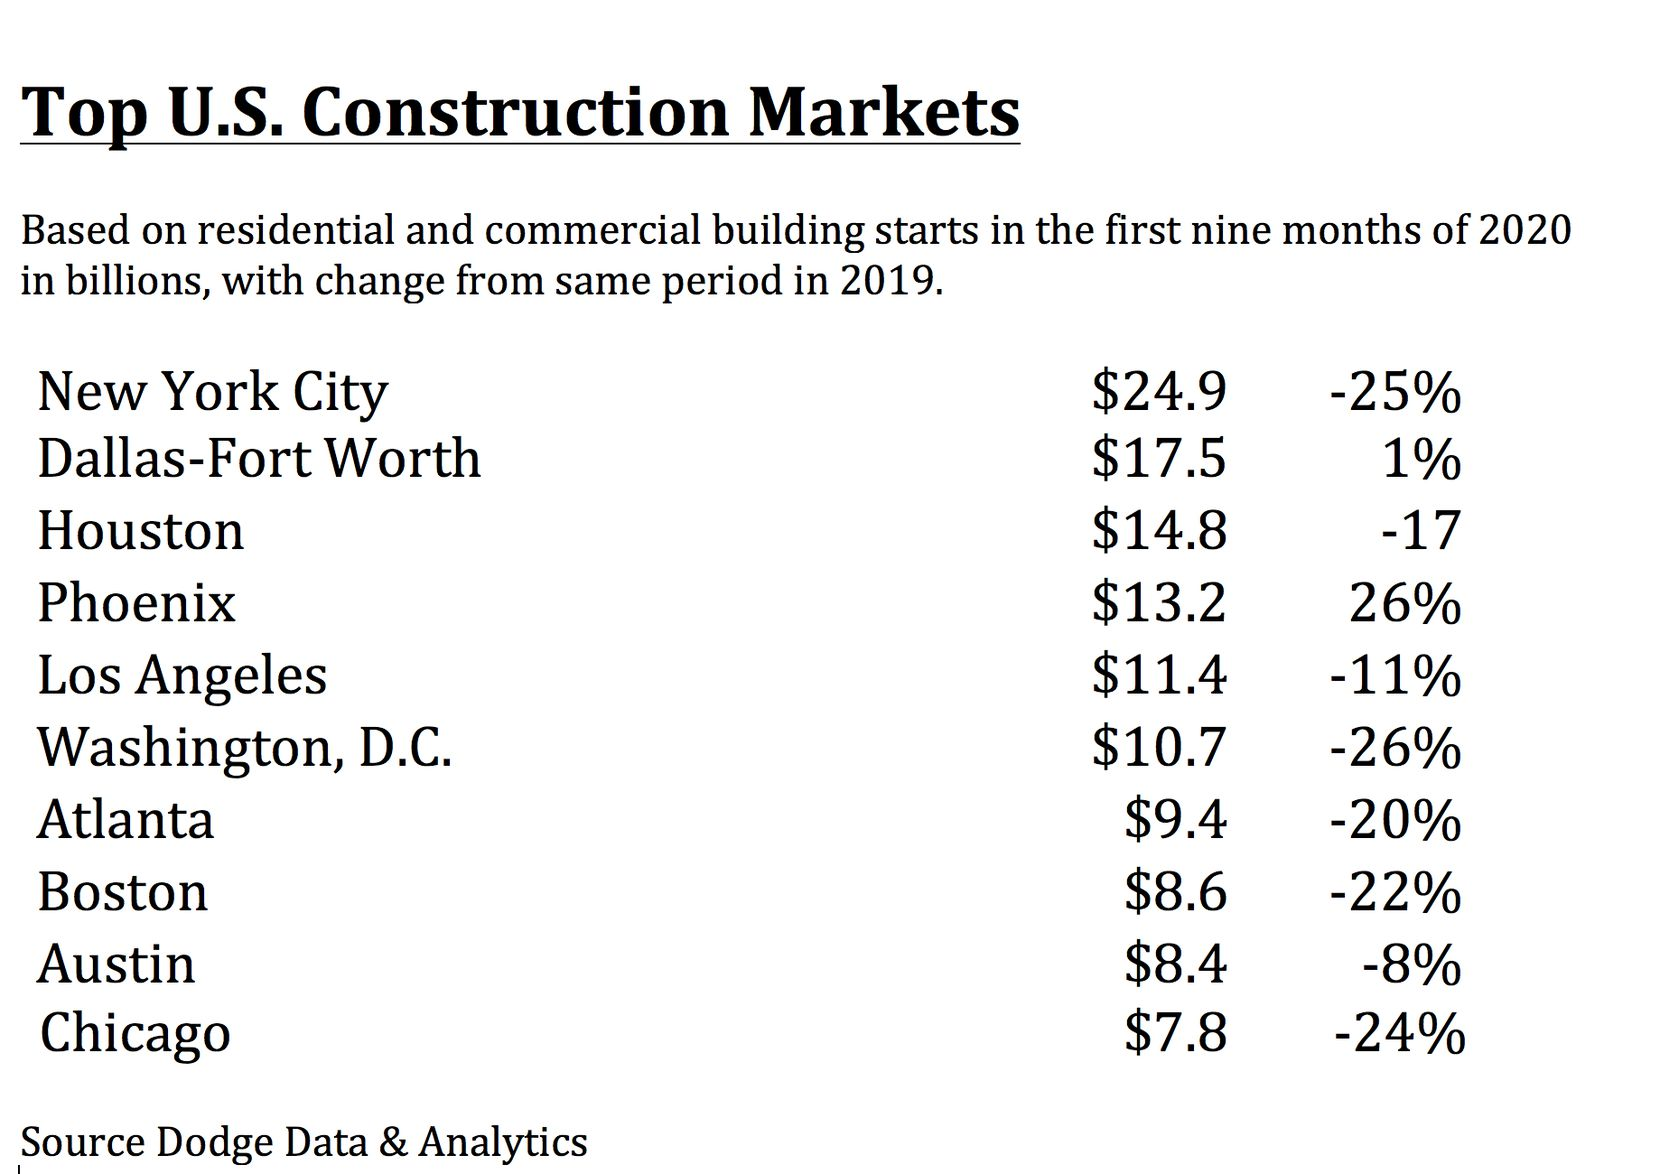 Only New York City has had more building starts this year.